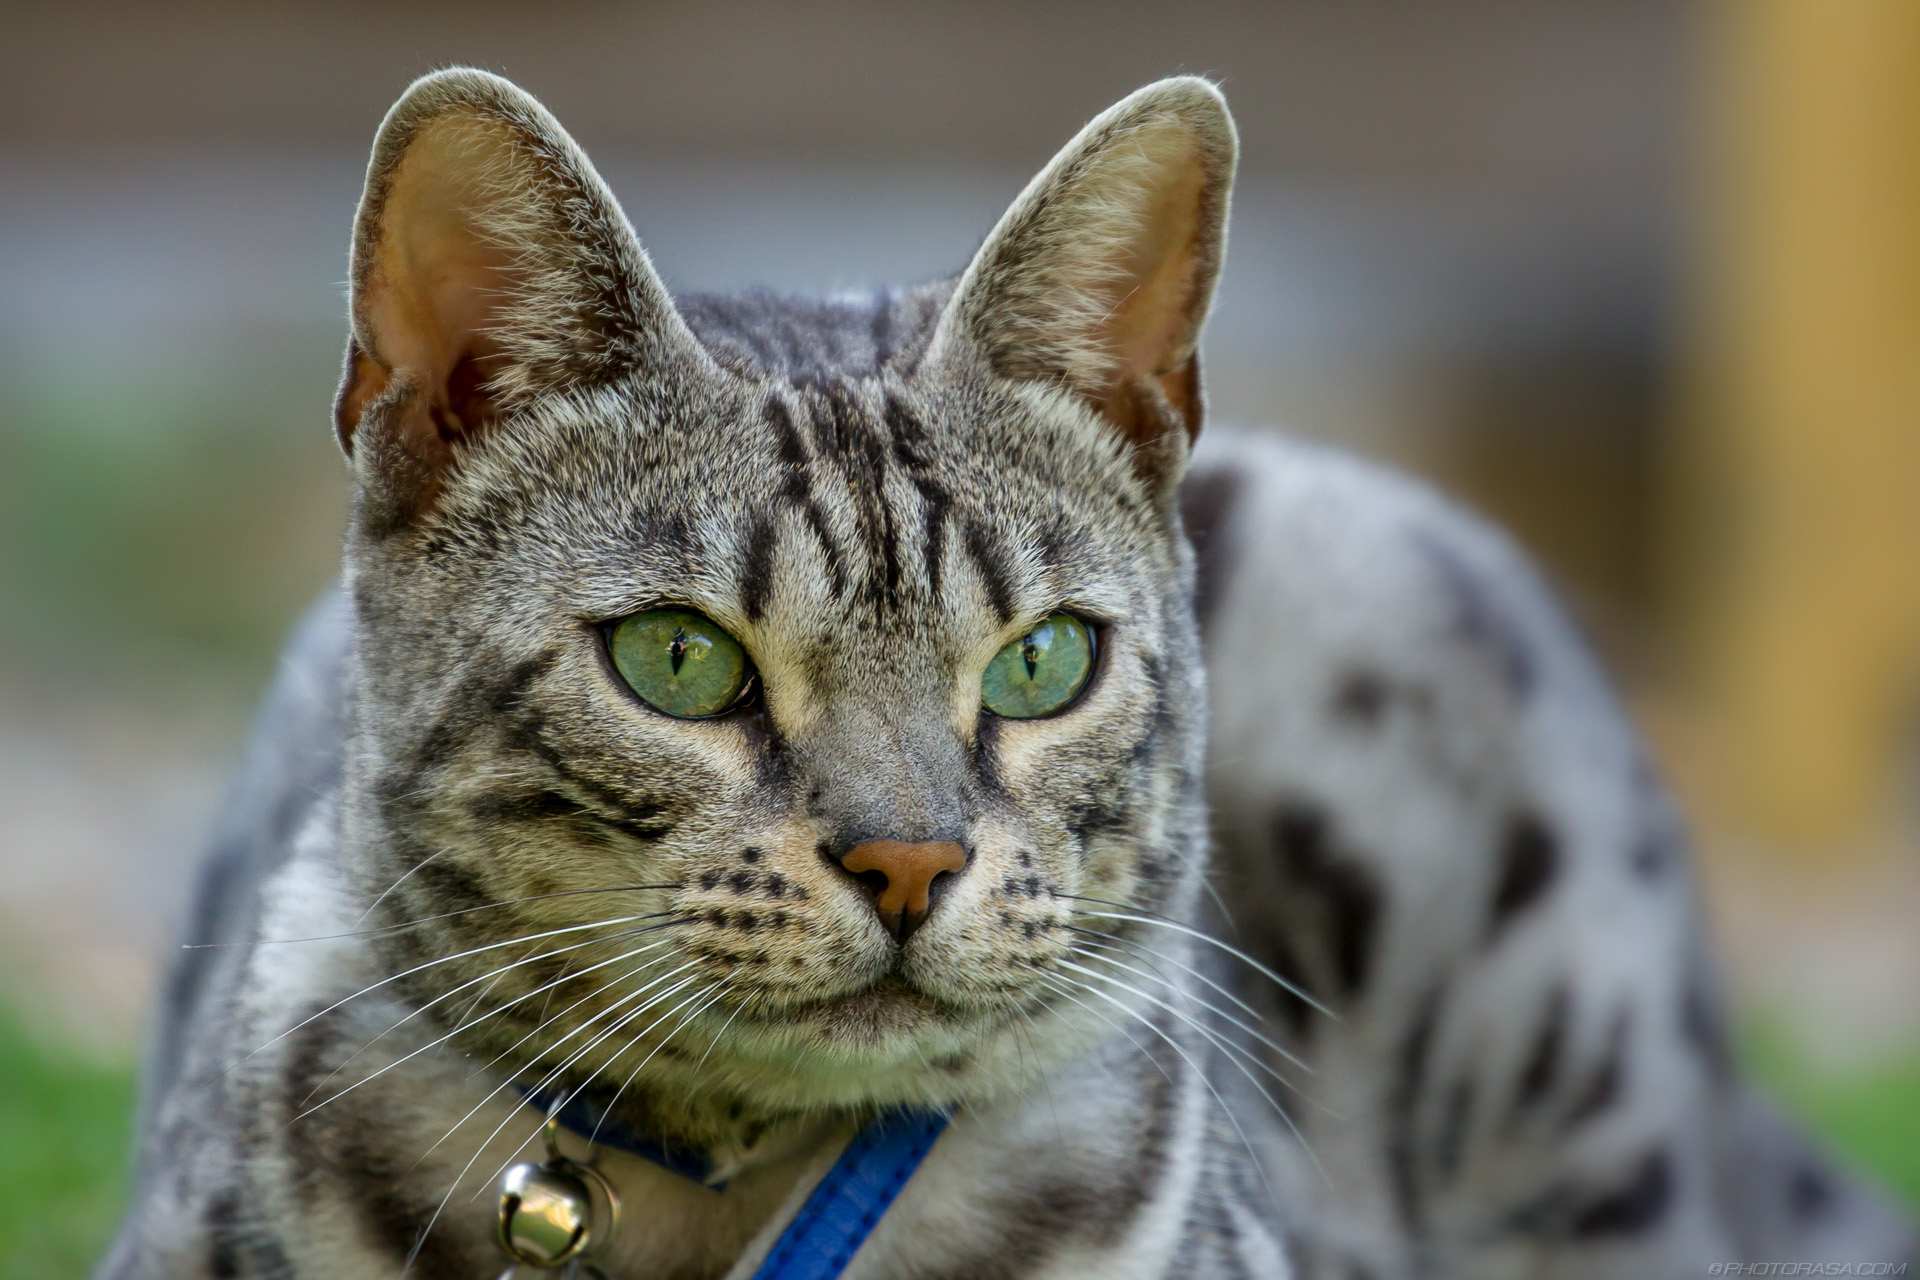 http://photorasa.com/silver-tabby-cat/head-of-silver-tabby-cat/